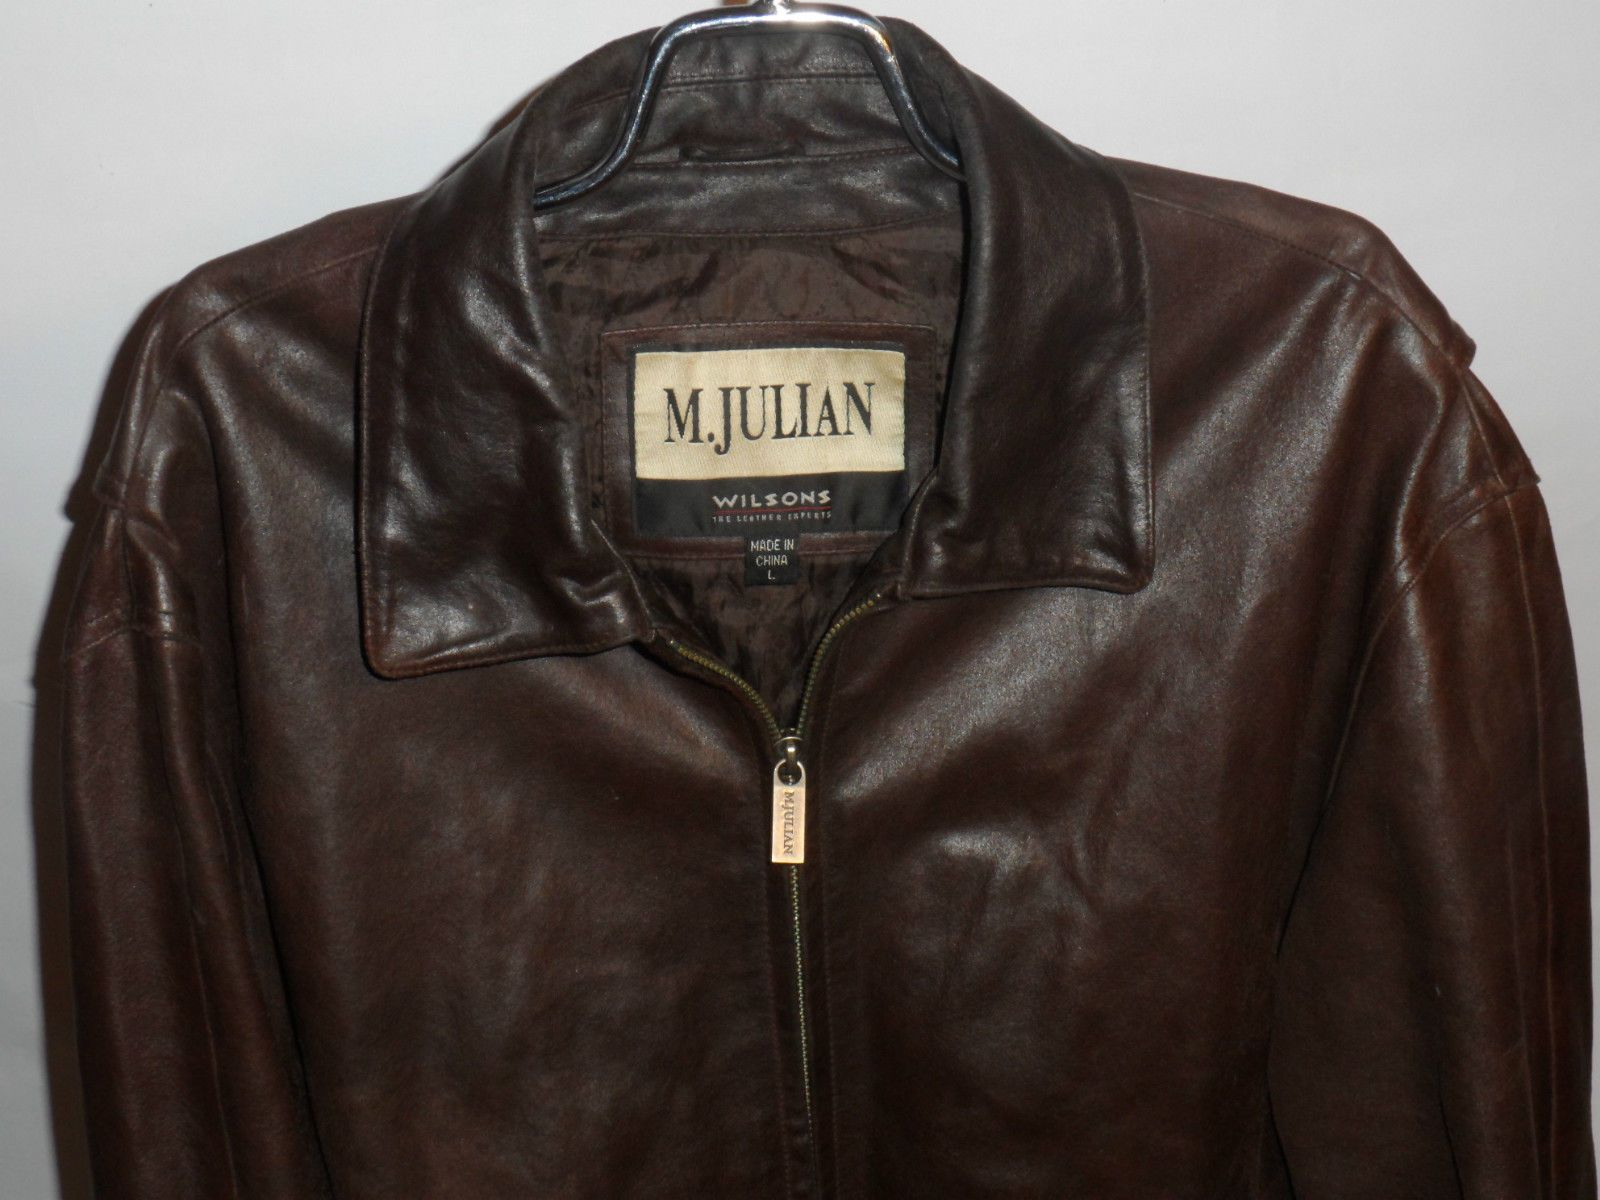 M Julian Wilsons Leather Jacket Classic Vintage Apparel